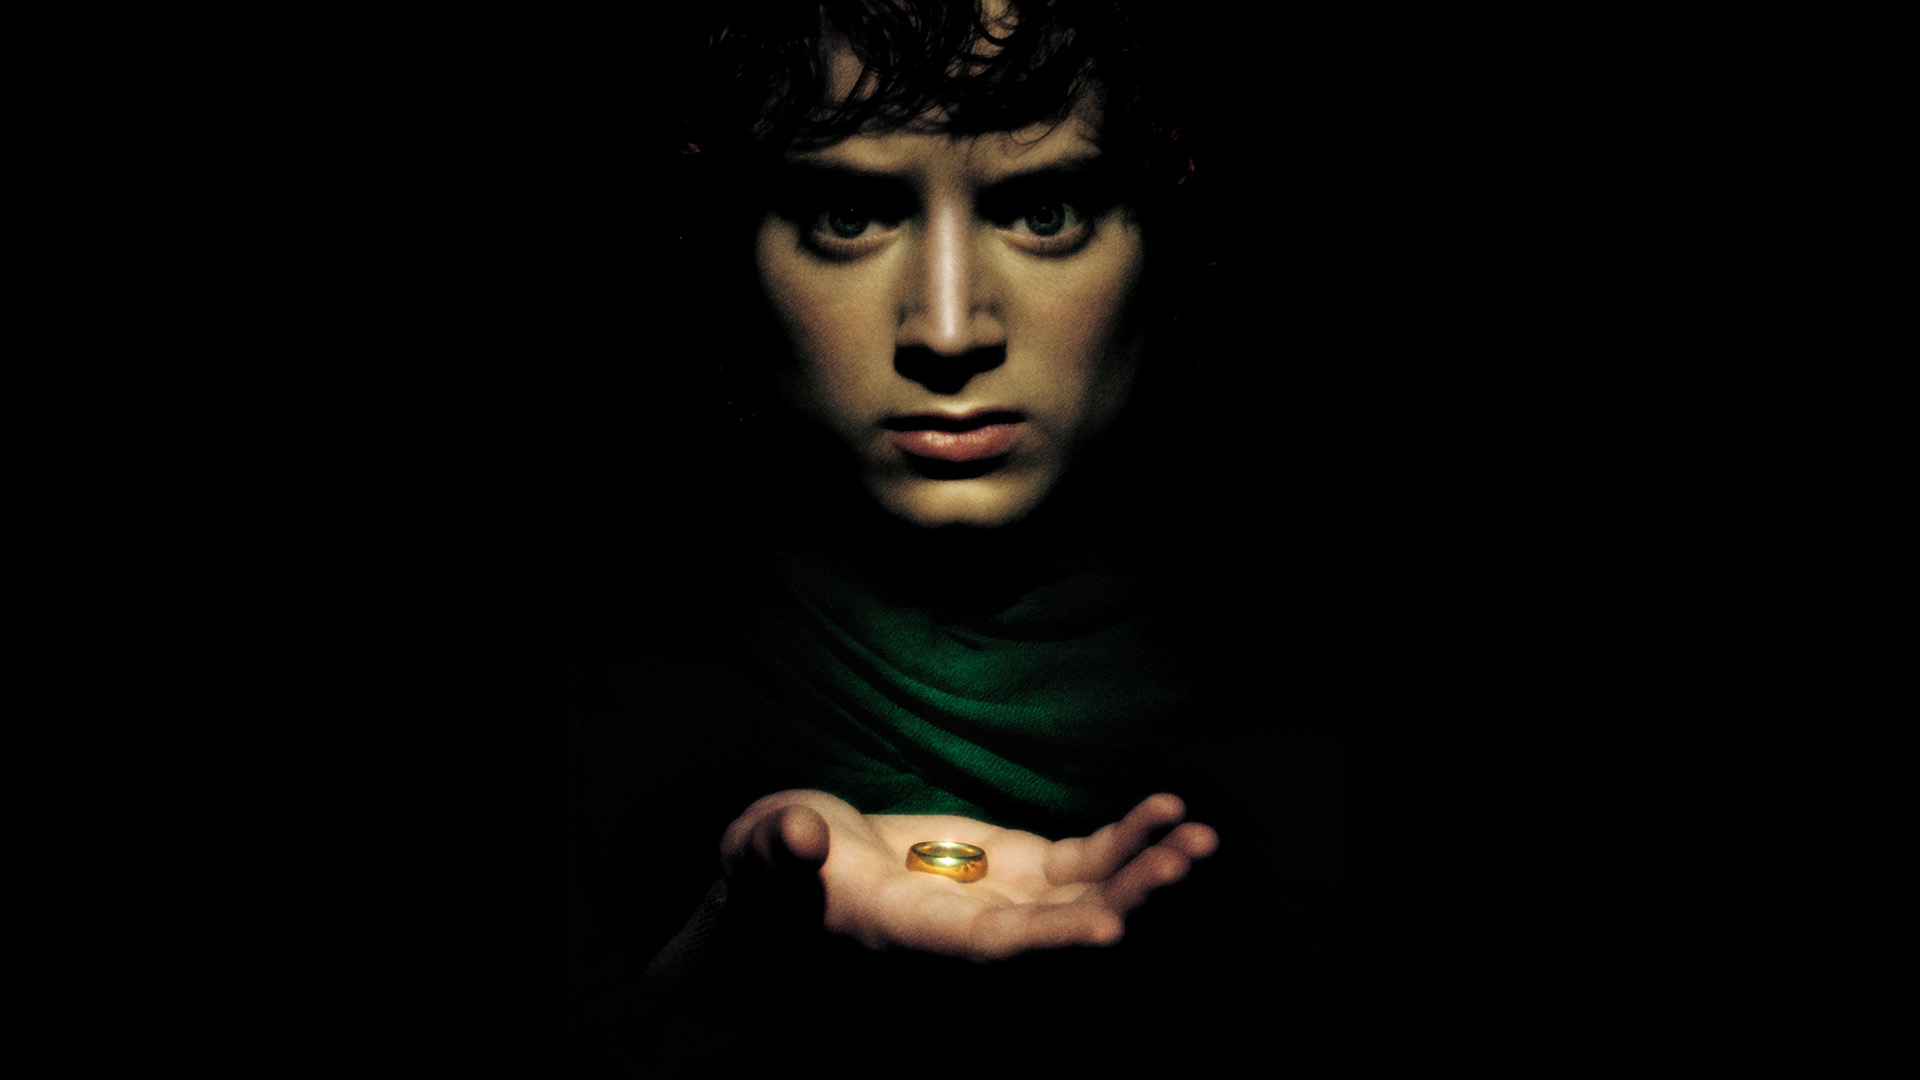 Lord of the Rings, Frodo, the ring